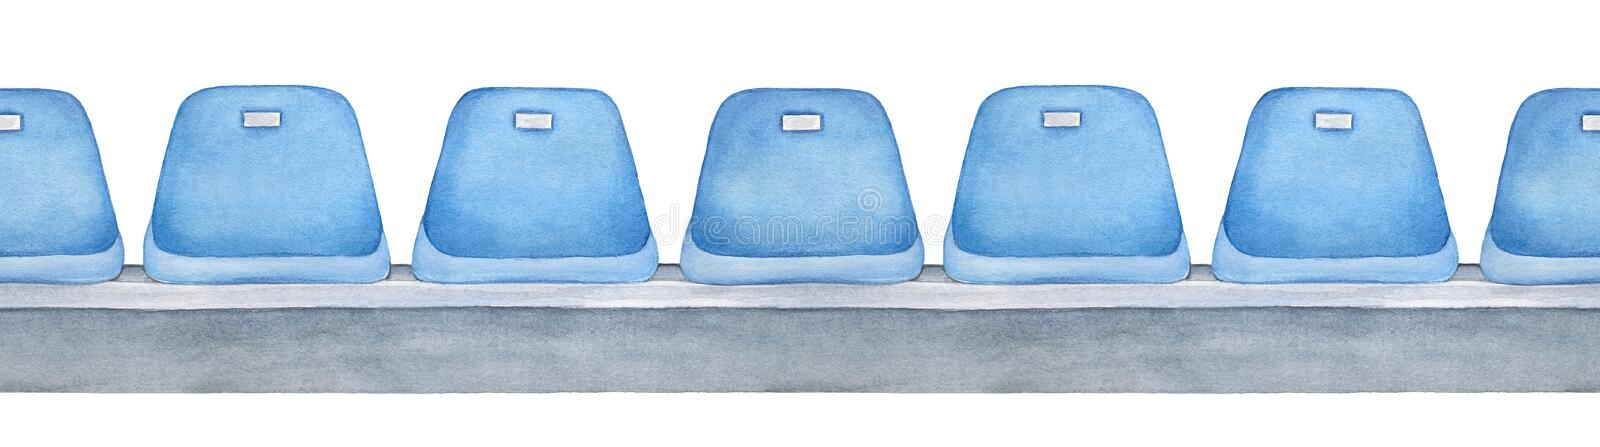 Seamless repeatable line of pale blue empty seats on gray platform. royalty free illustration